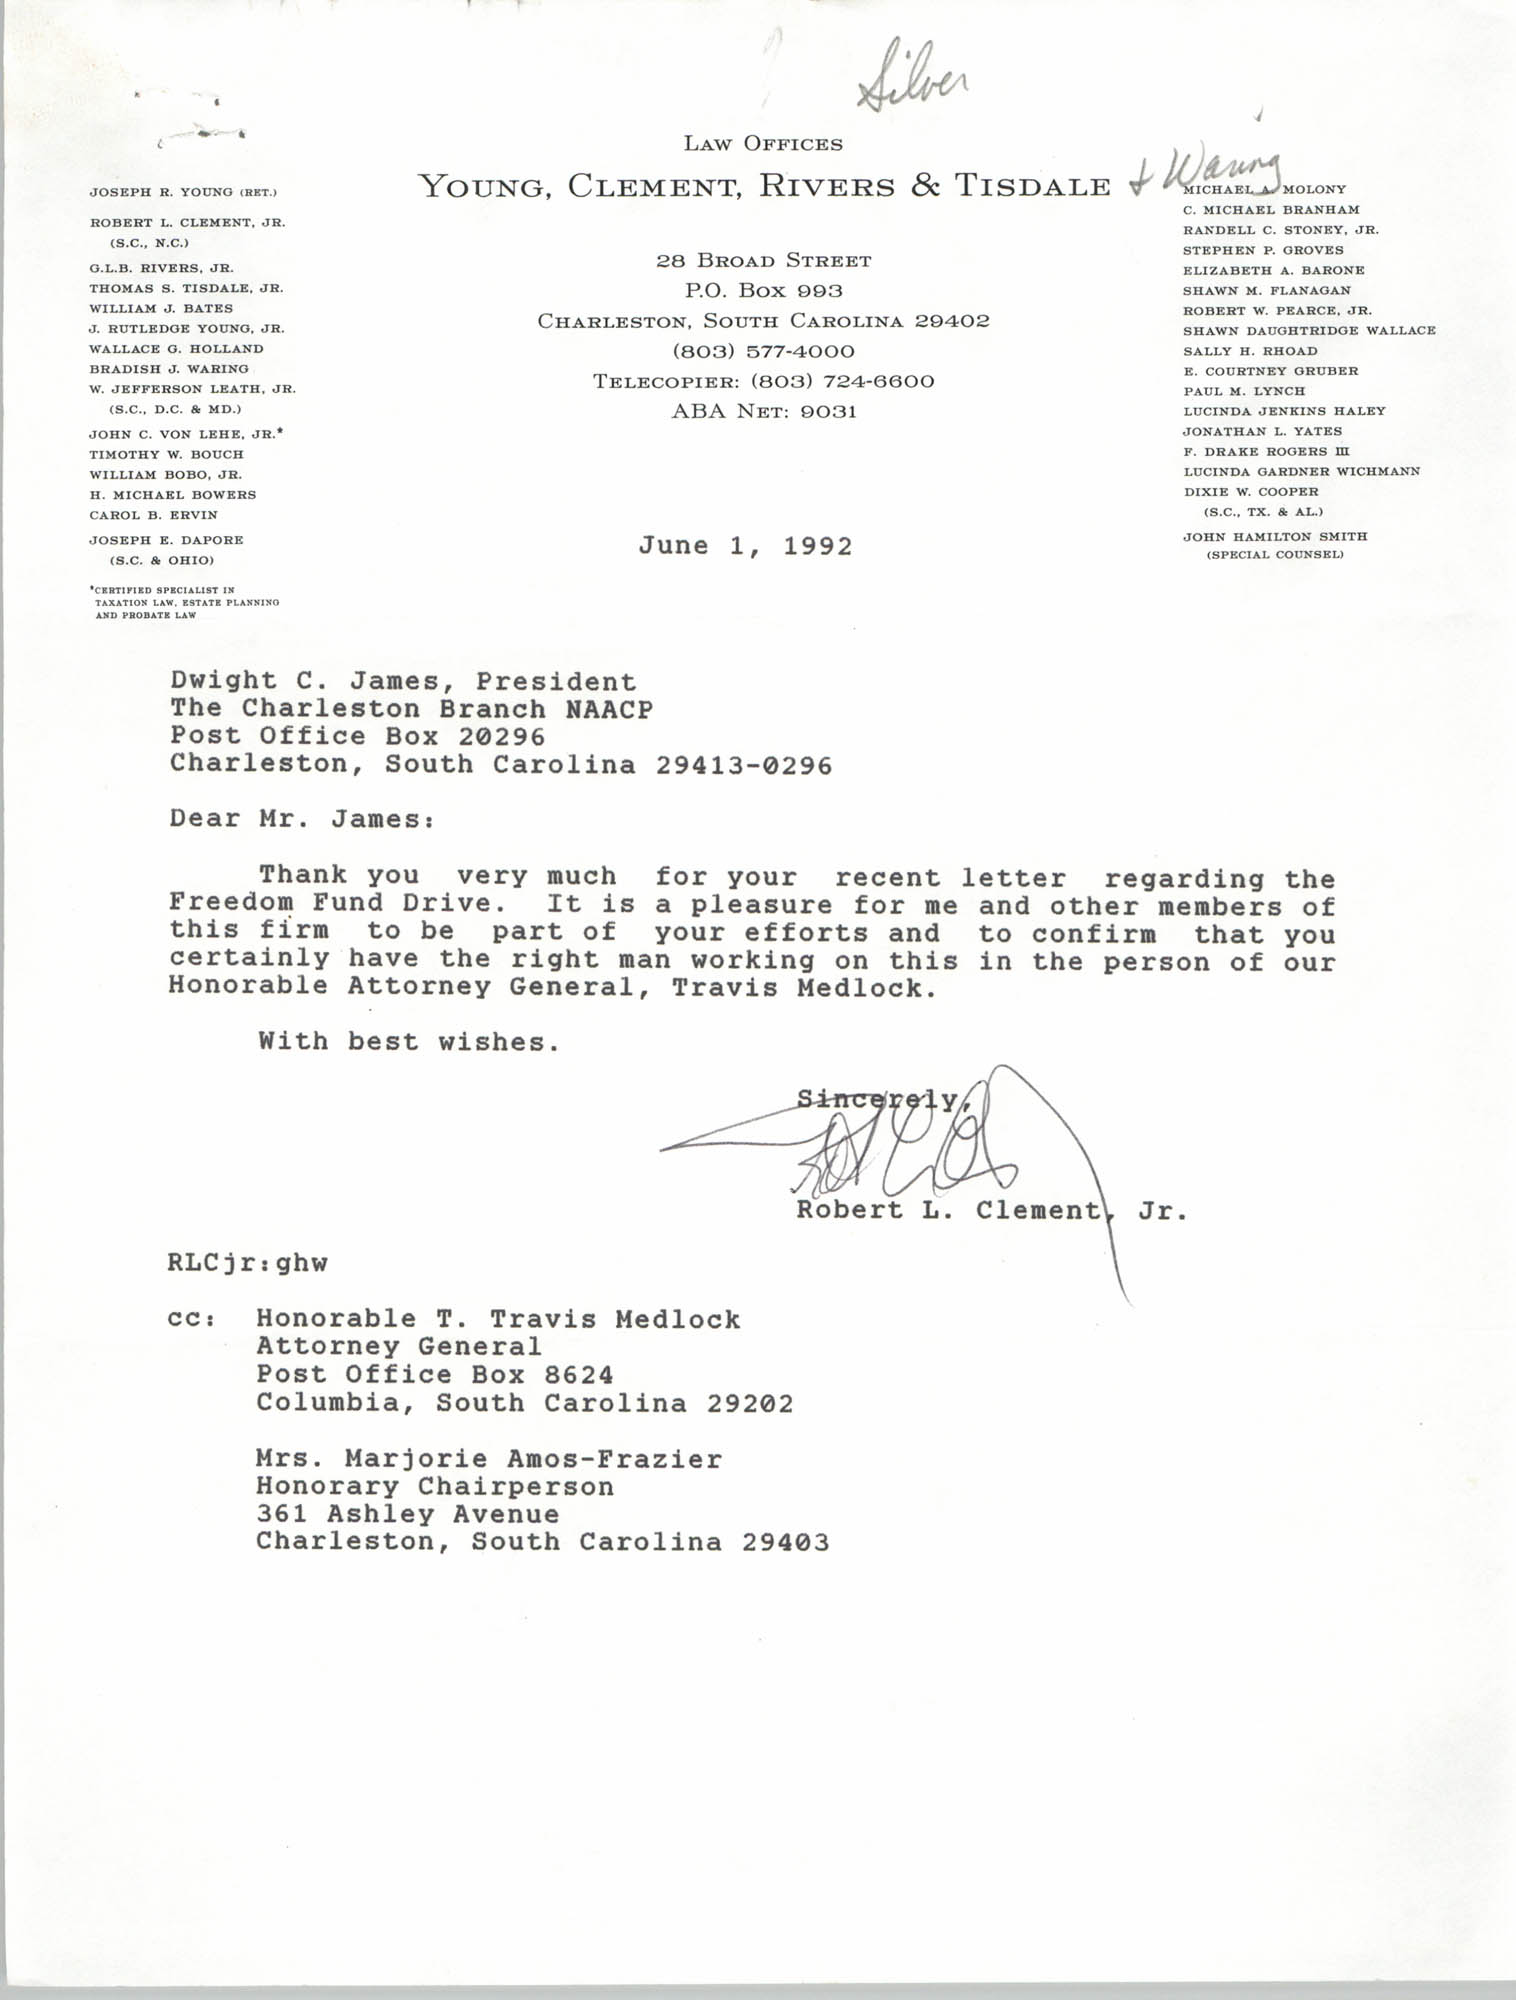 Letter from Robert L. Clement, Jr. to Dwight C. James, June 1, 1992